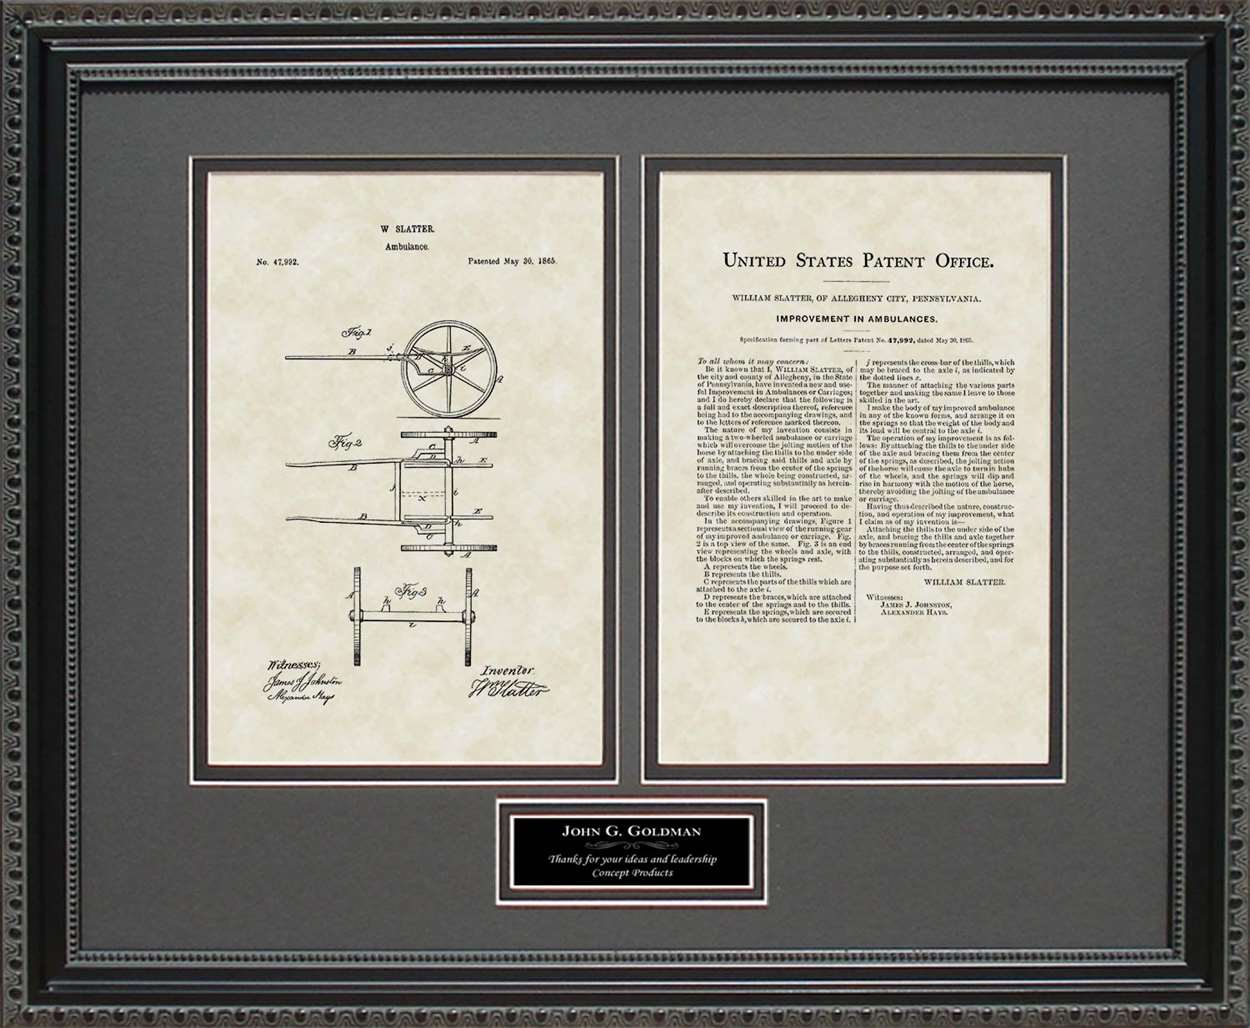 Personalized Ambulance Patent, Art & Copy, Slatter, 1865